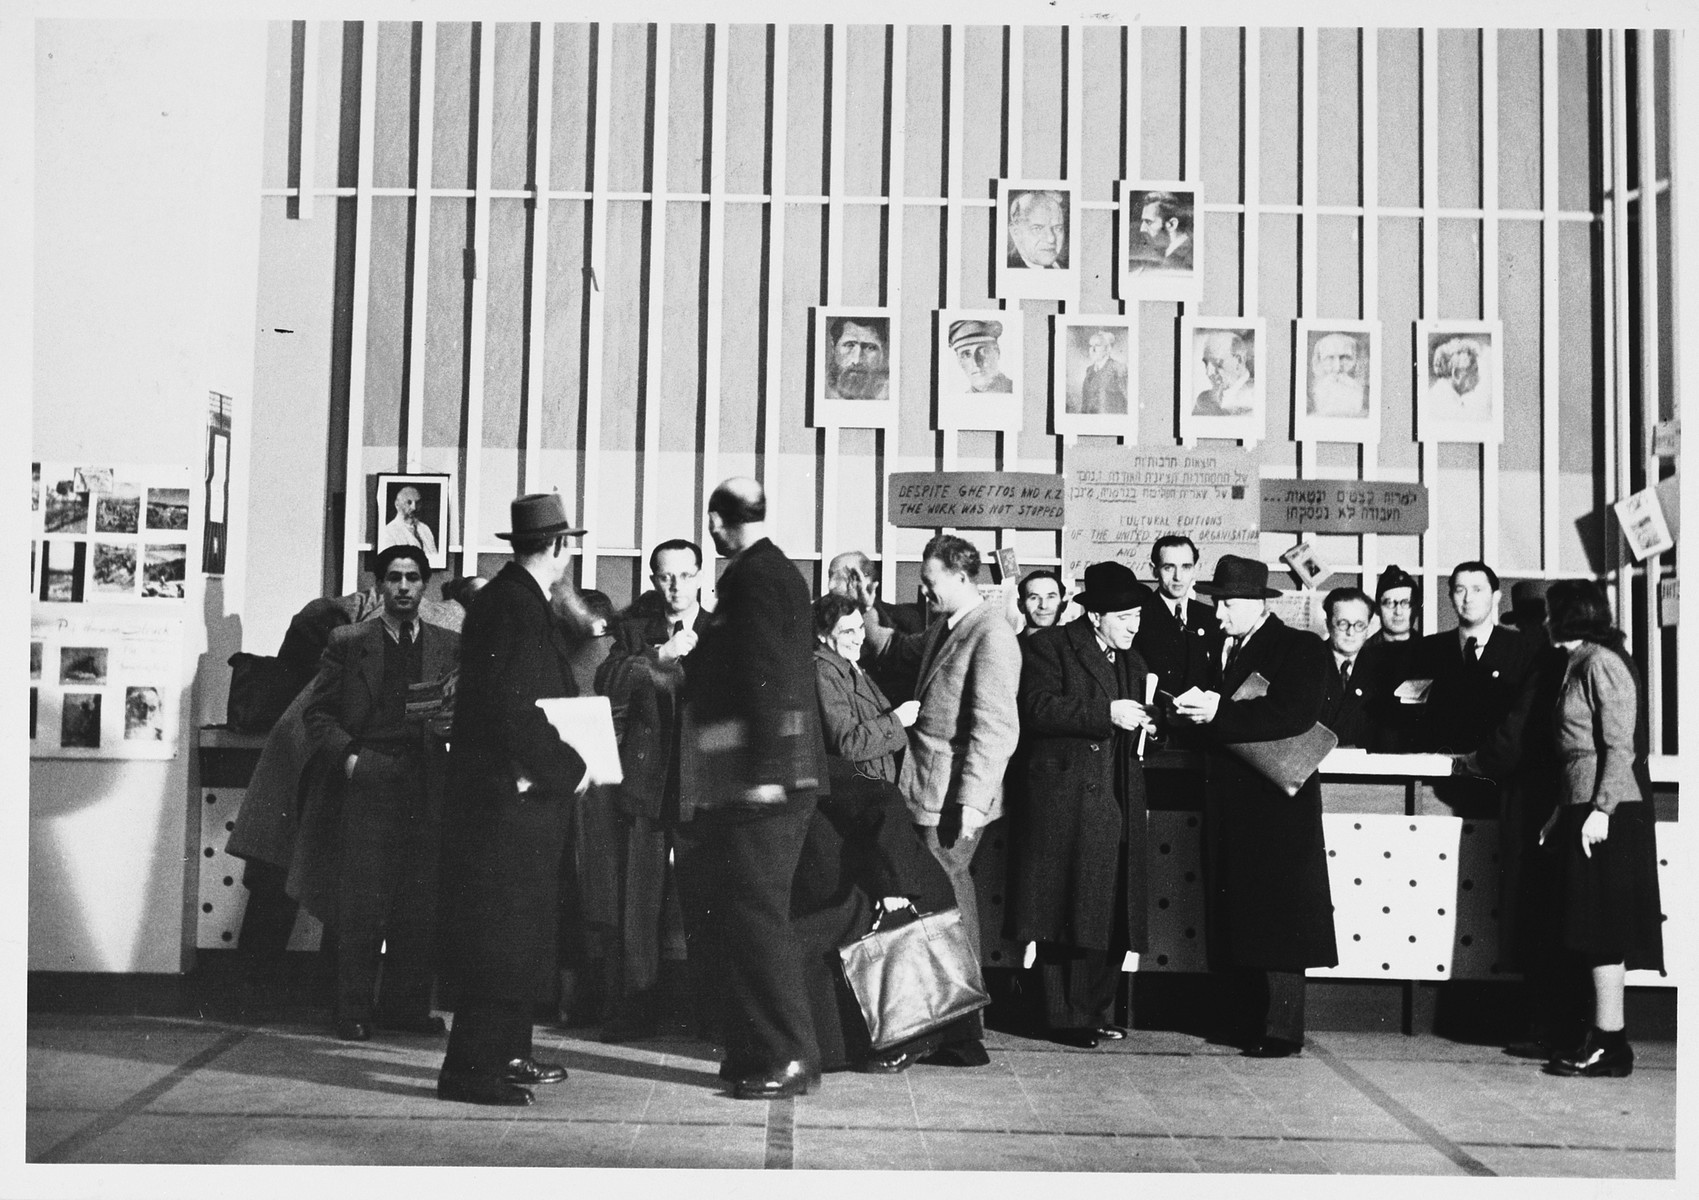 Delegates gather at the World Zionist Congress in Basel, Switzerland.  Among those pictured is Mendel Abramowicz.